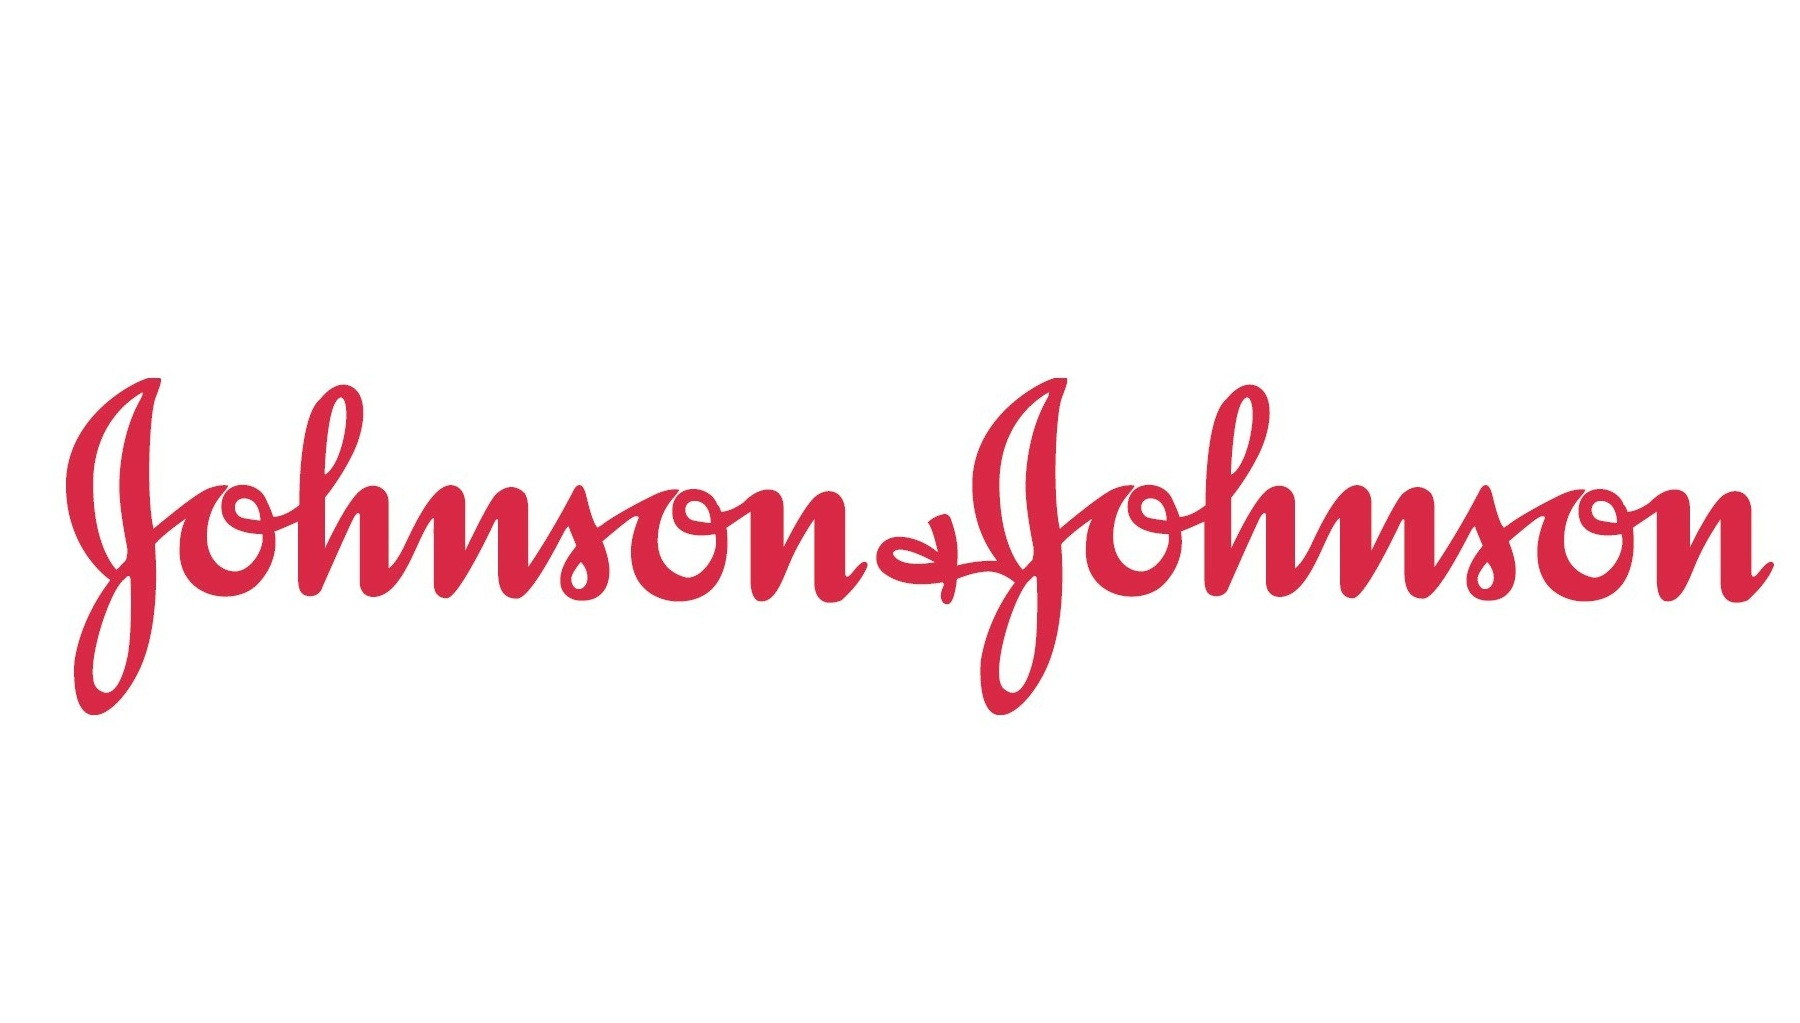 image relating to Johnson and Johnson Coupons Printable titled Johnson-johnson Discount codes - The Krazy Coupon Girl